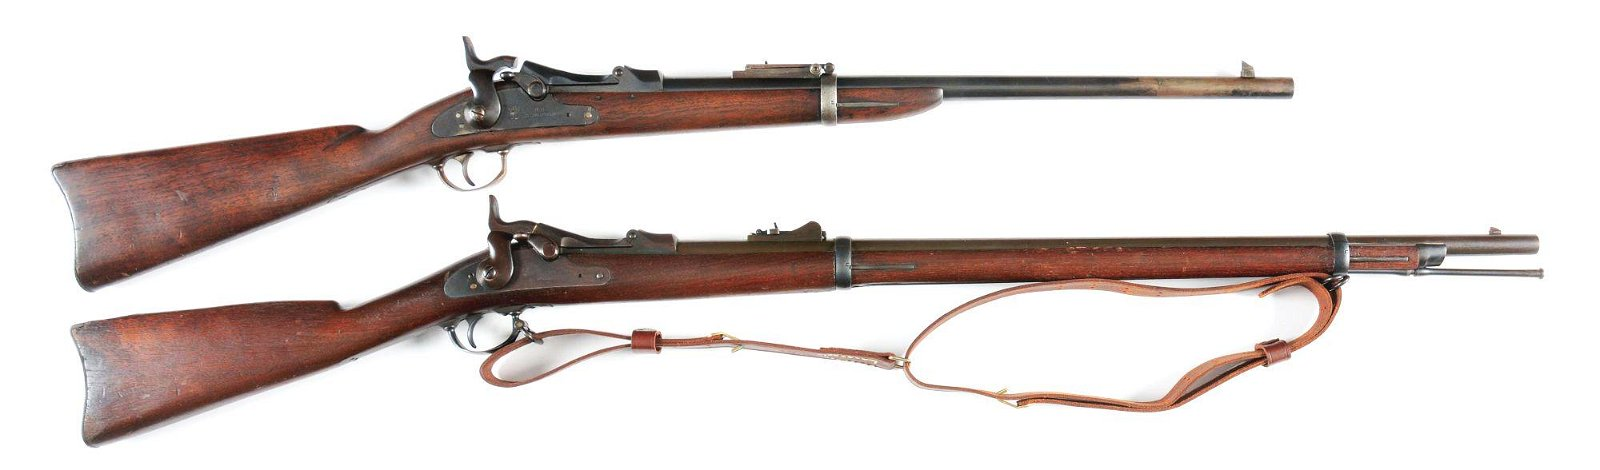 (A) LOT OF TWO: SPRINGFIELD TRAPDOOR .45-70 RIFLE AND